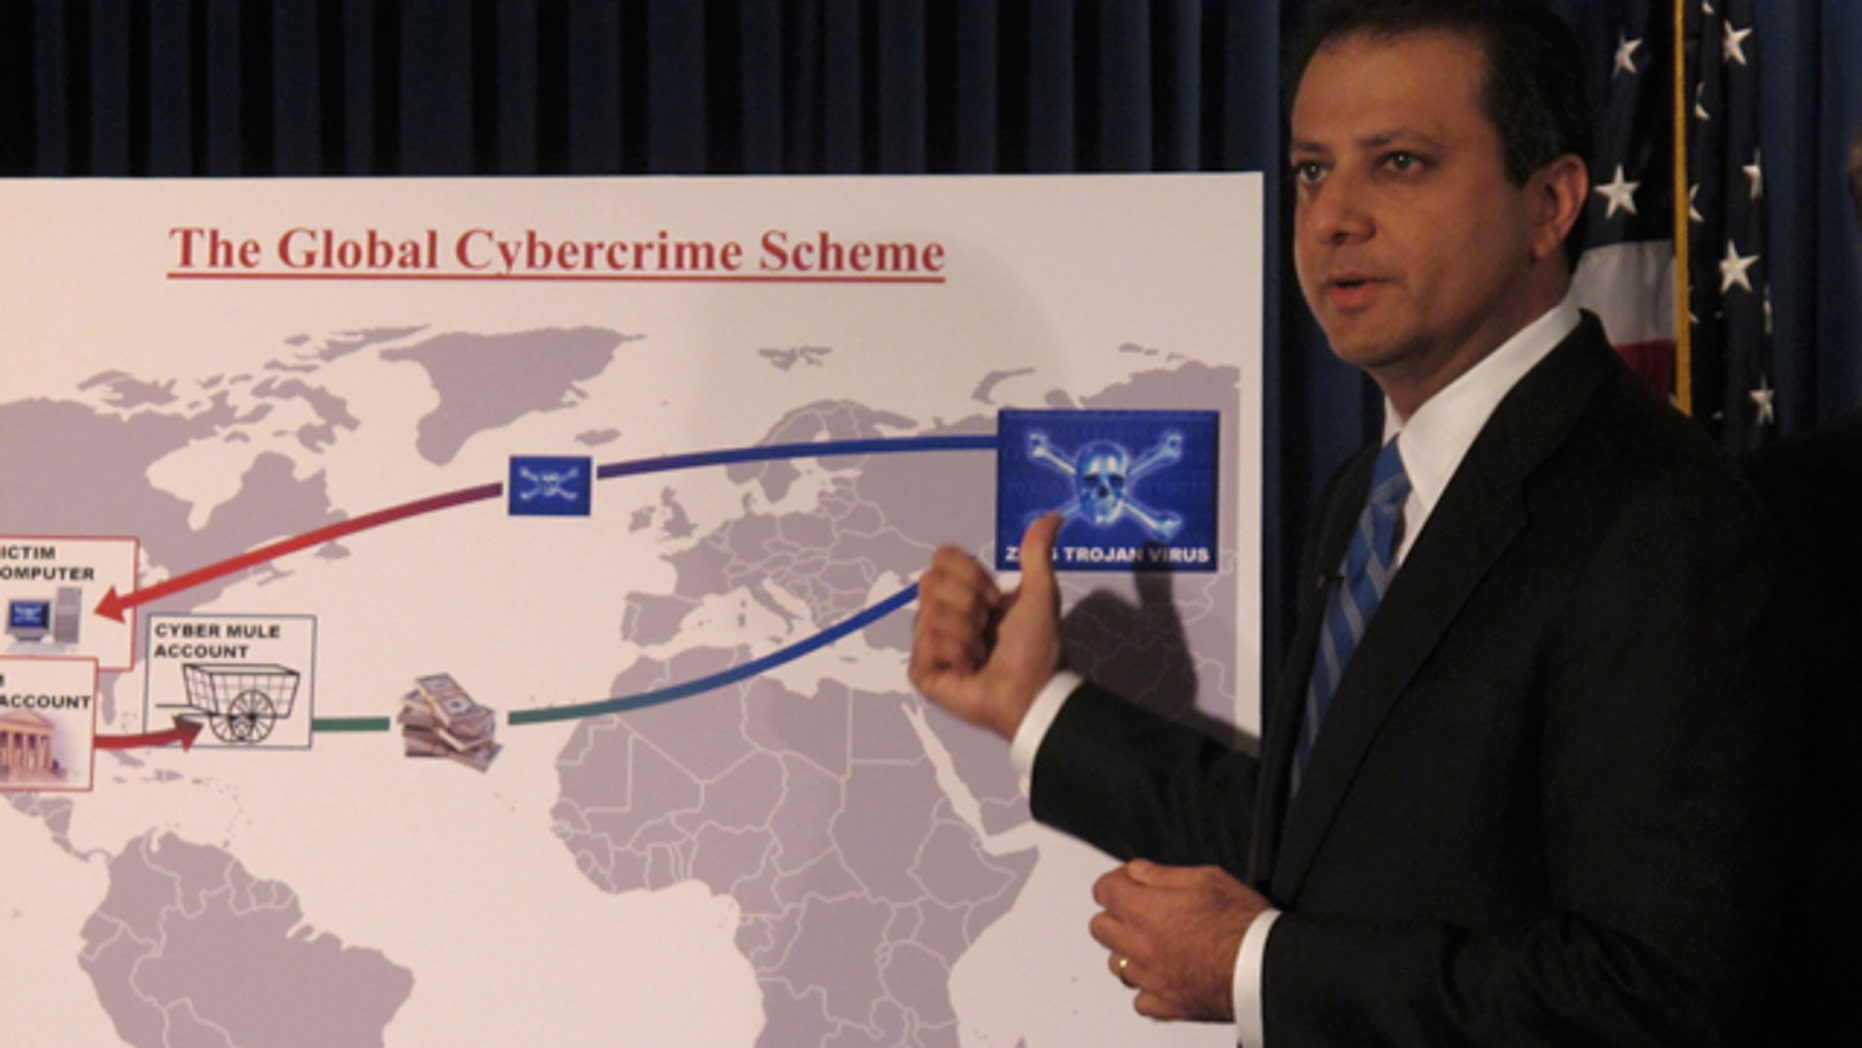 Preet Bharara, U.S. Attorney for the Southern District of New York, explains a Global Cybercrime chart at a press conference announcing dozens of charges against an international group of cybercrimnials.